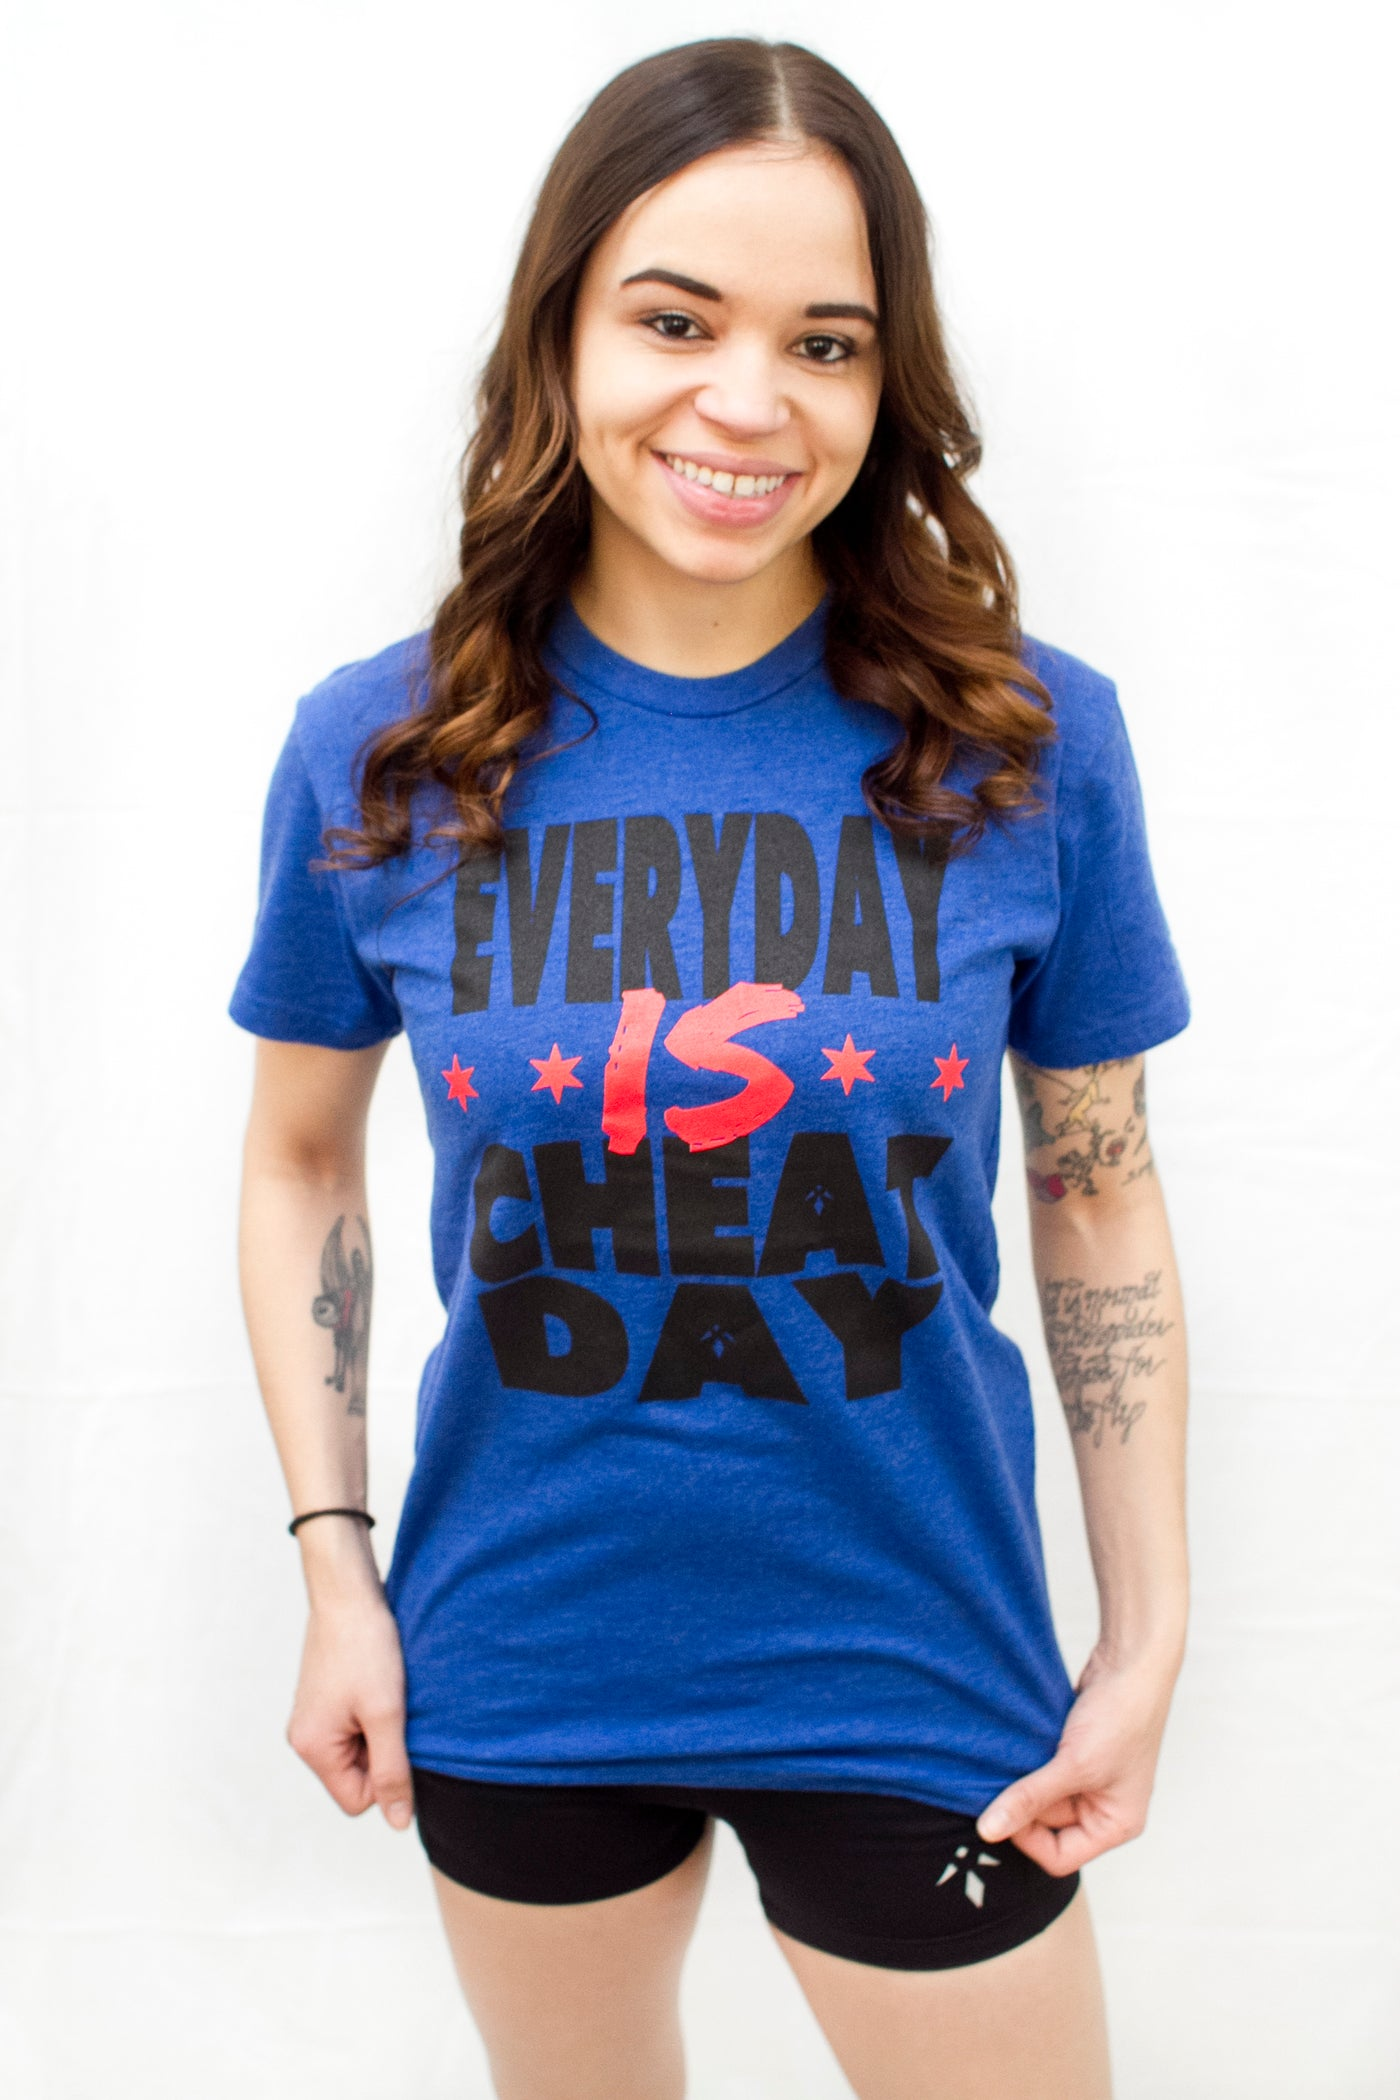 Everyday Is Cheat Day (T-Shirt)